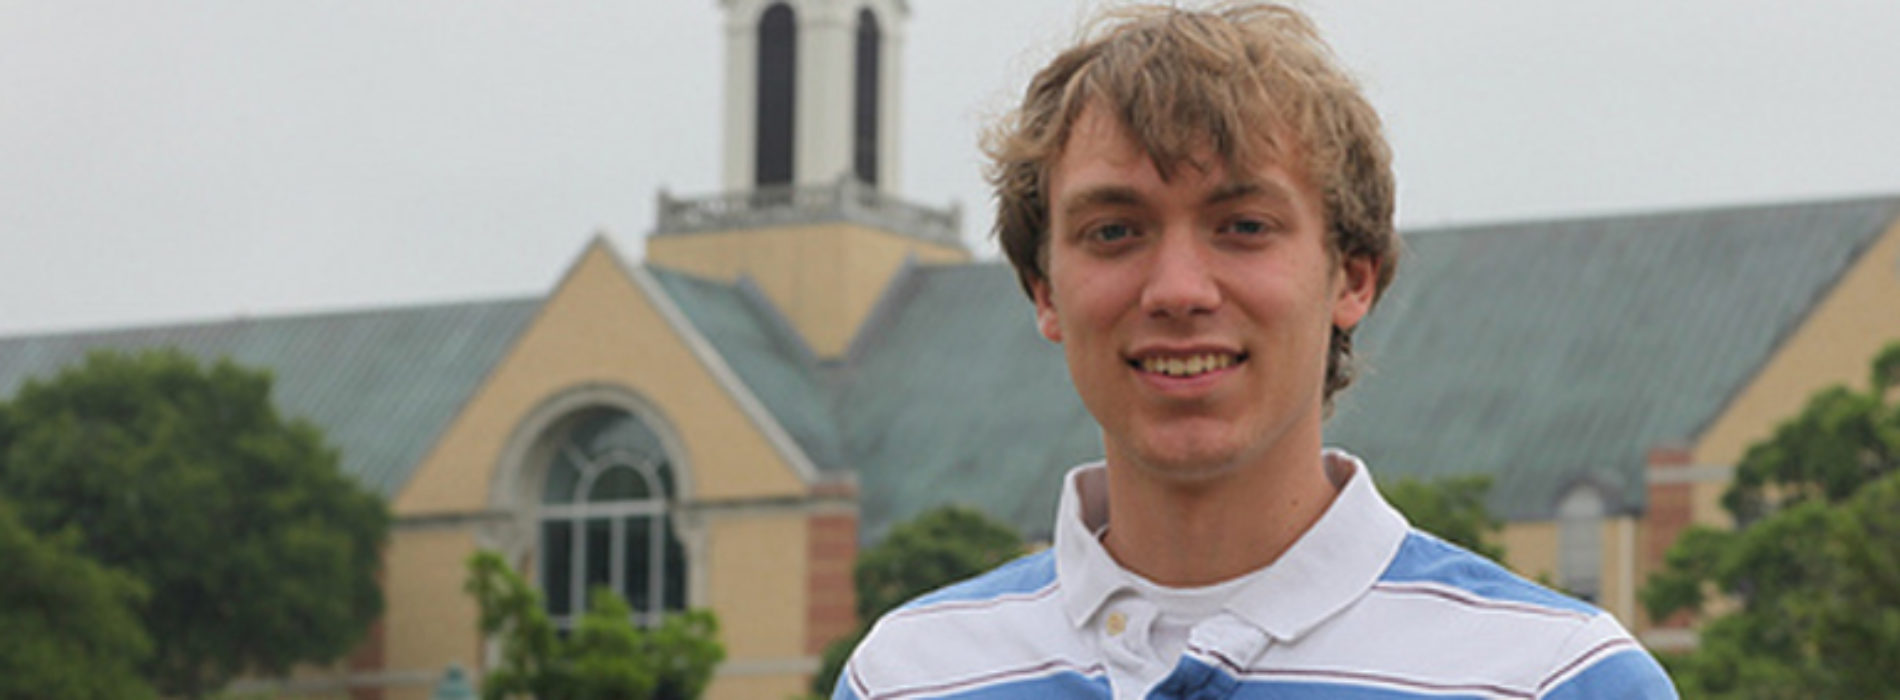 Student Learns to Communicate for God